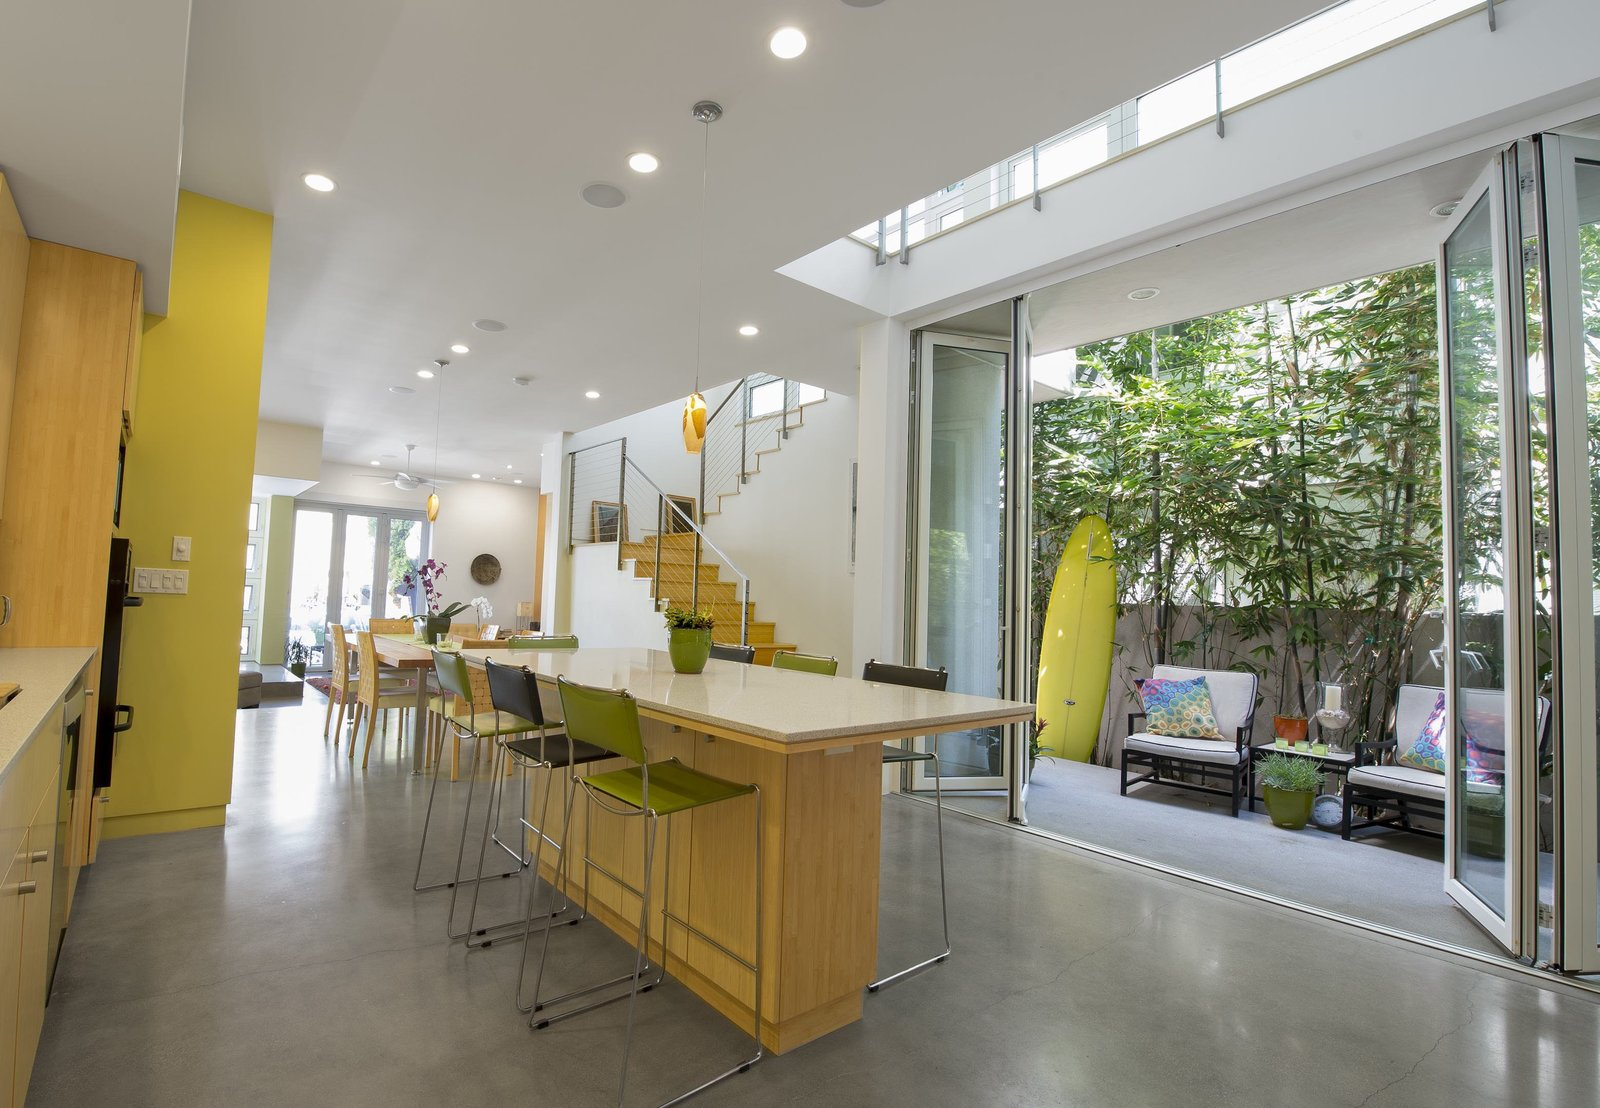 """The kitchen and dining area opens onto a patio. Photo by Ken Pagliaro Photography. Tagged: Kitchen, Concrete Floor, Recessed Lighting, Ceiling Lighting, and Wood Cabinet.  Photo 1 of 8 in A Sustainable """"Case Study"""" House in California"""